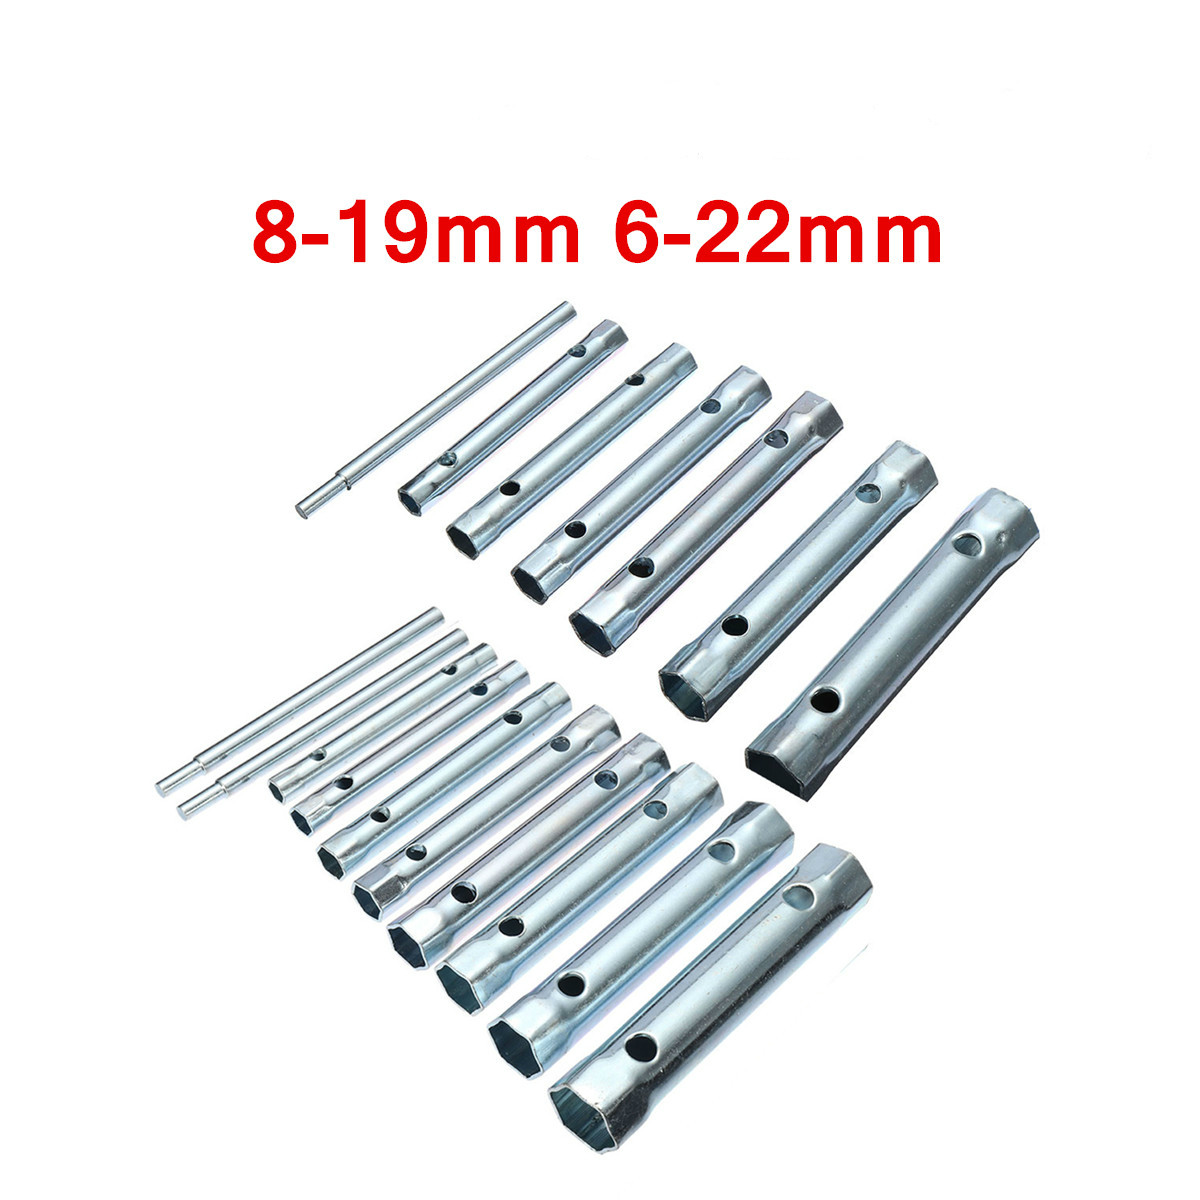 6PC/10PC 8-19mm 6-22mm Metric Tubular Box Plumb Repair Steel Double Ended Wrench Set Tube Bar Spark-Plug Spanner For Automotive